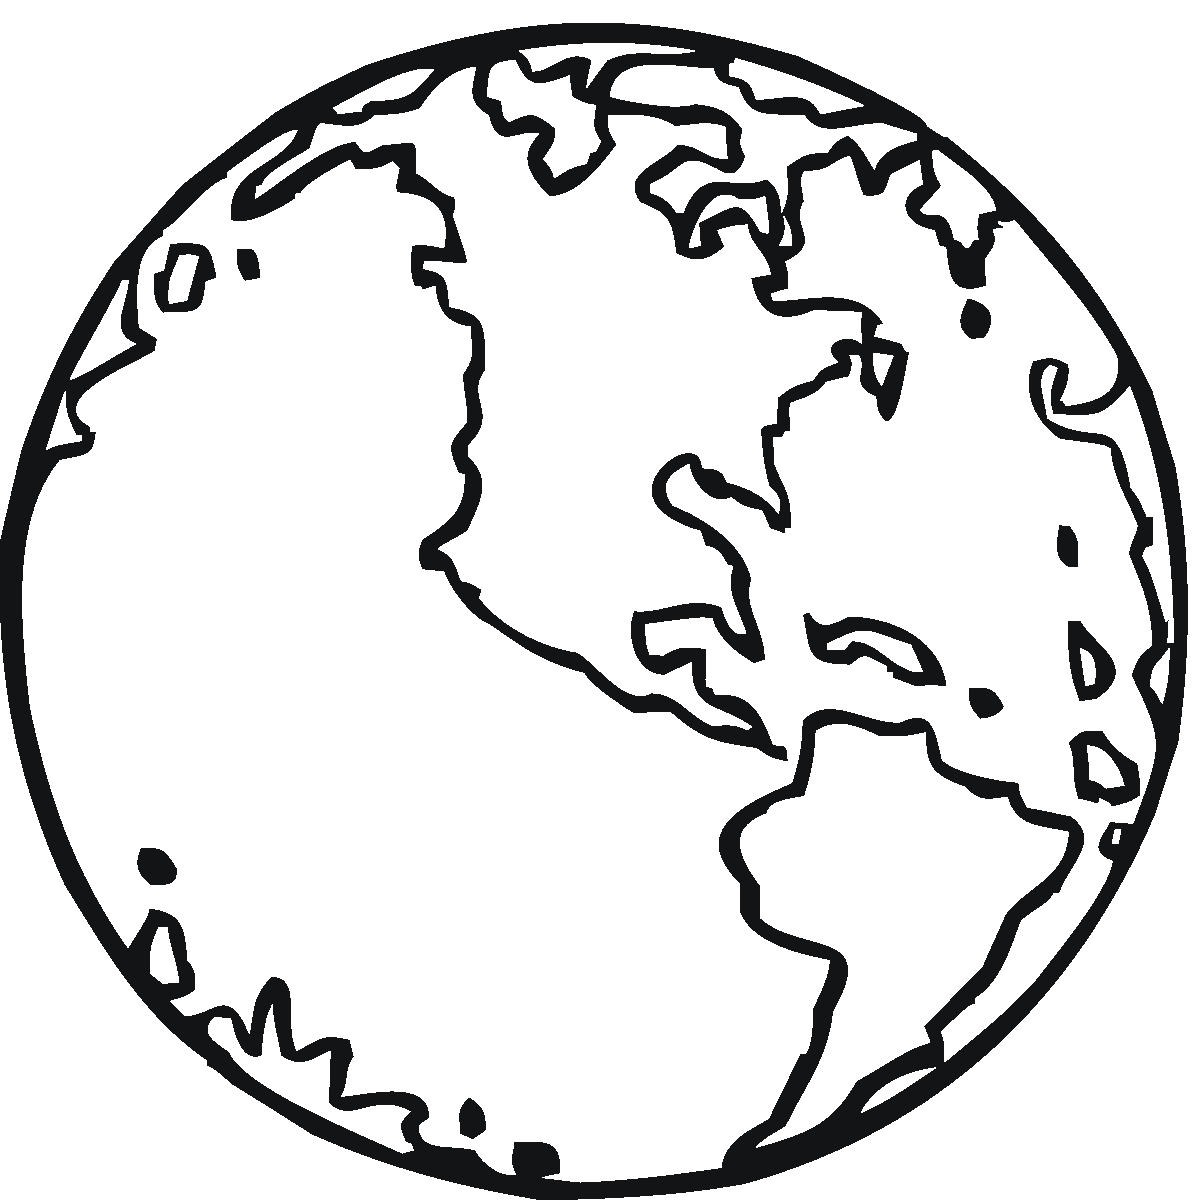 Planet Earth Coloring Sheet Page 2